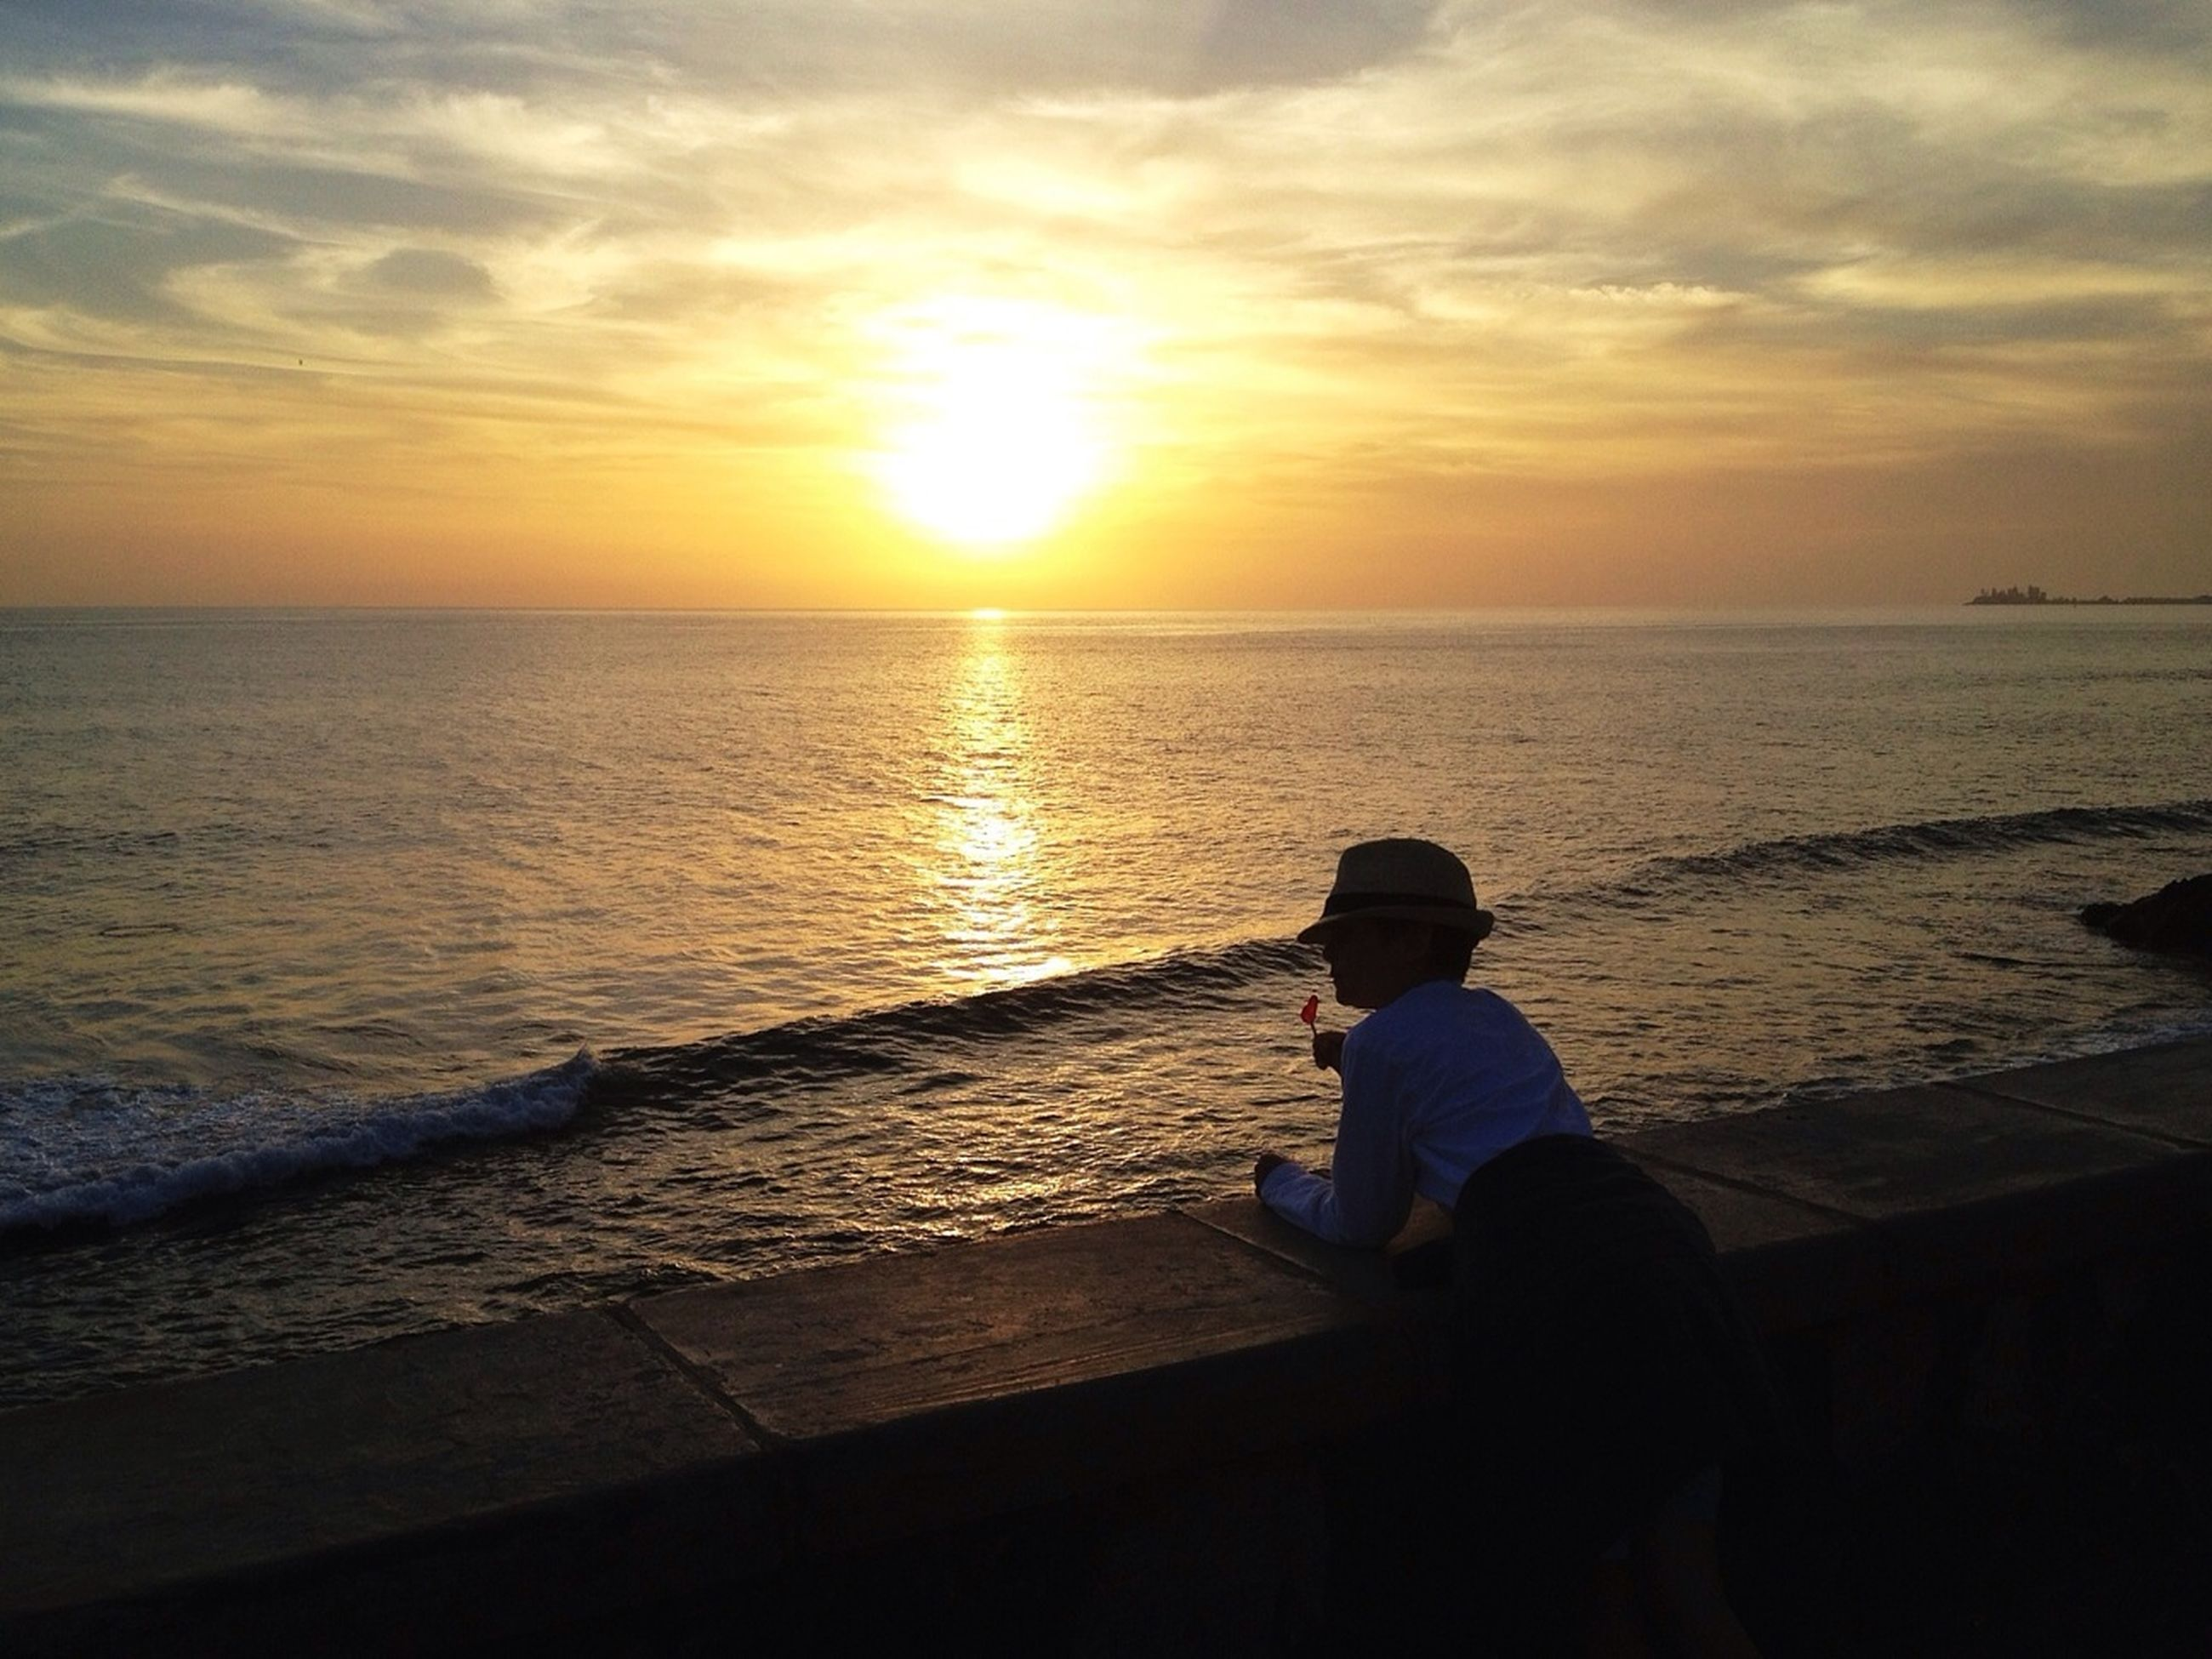 sunset, sea, horizon over water, water, sky, sun, scenics, lifestyles, leisure activity, beauty in nature, tranquil scene, beach, tranquility, orange color, idyllic, standing, silhouette, nature